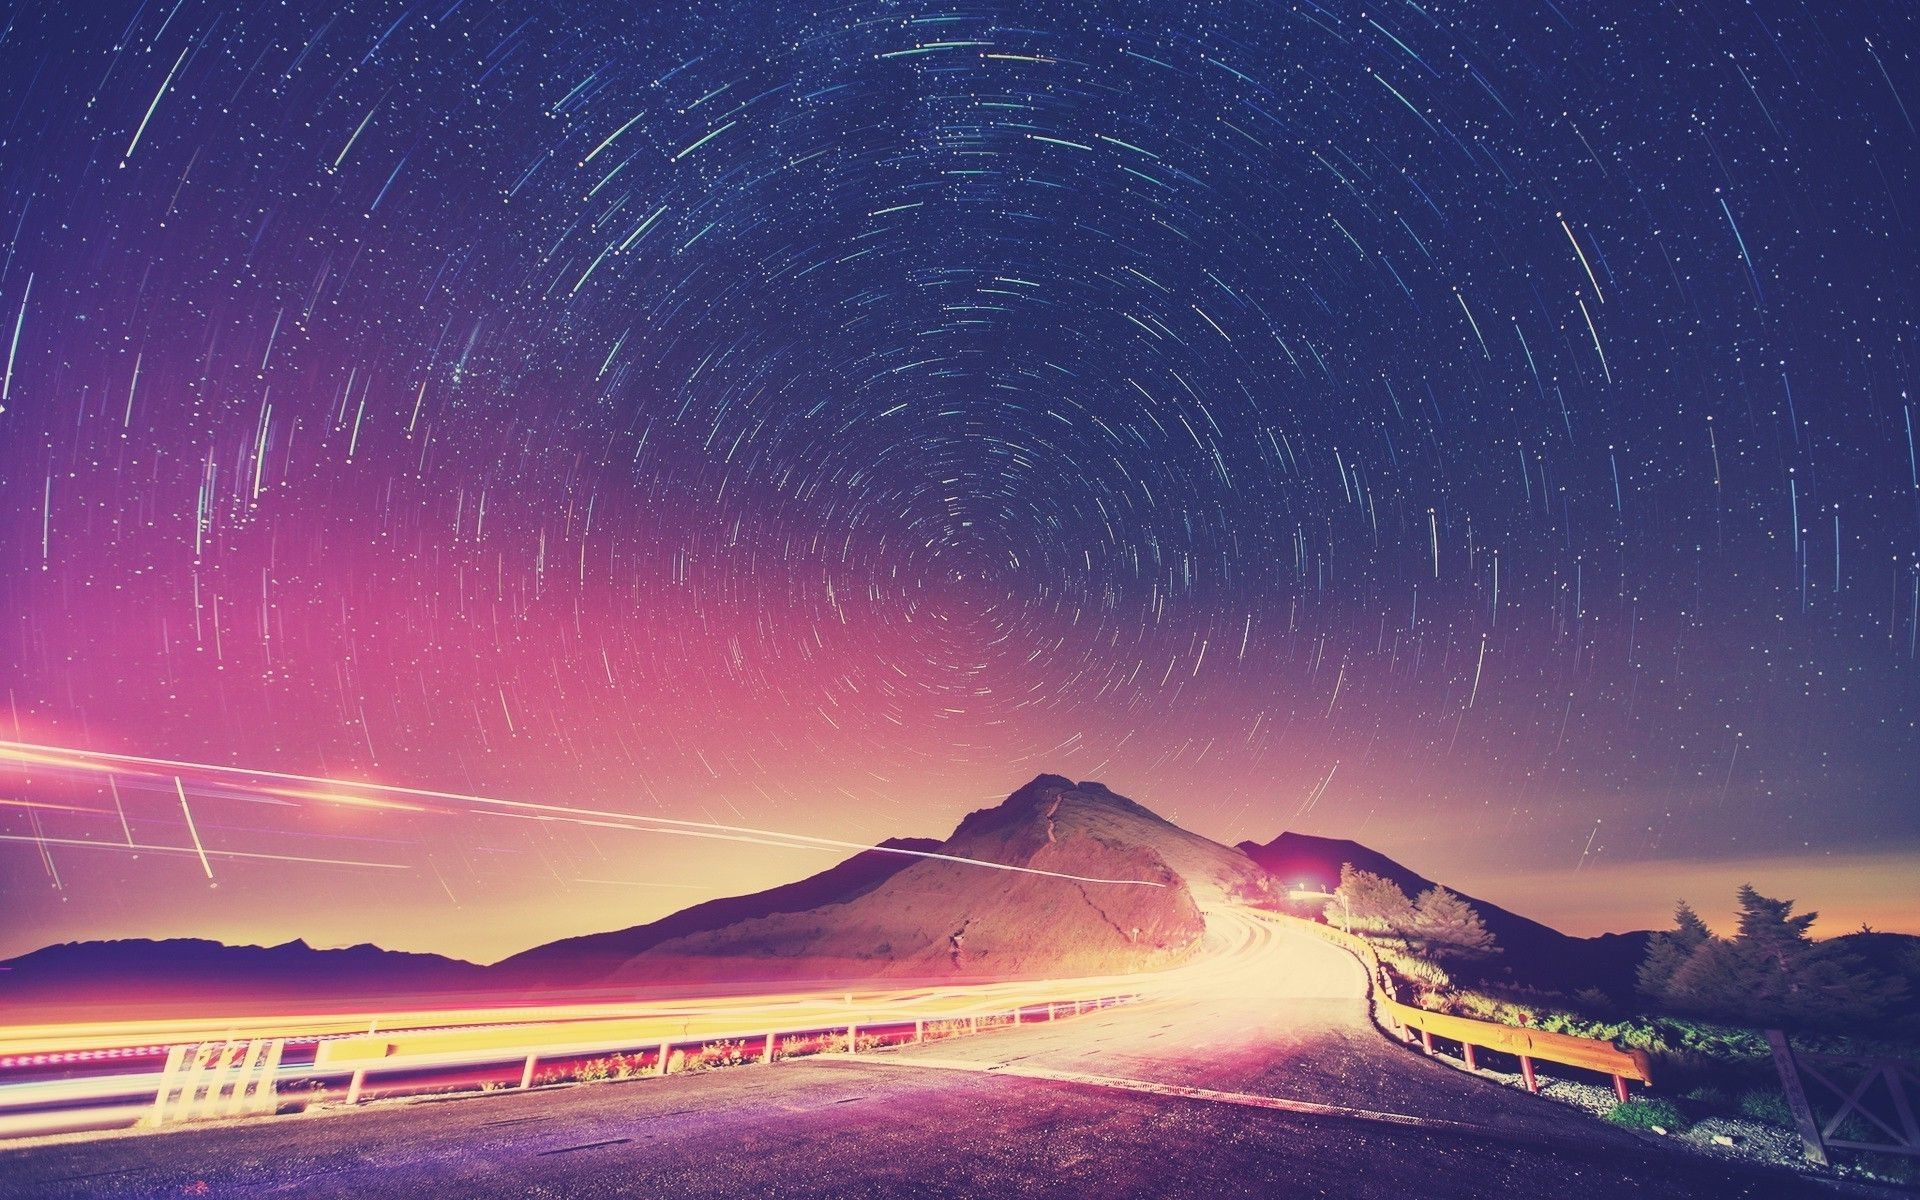 Top Night Sky Mountains Stars Images for Pinterest